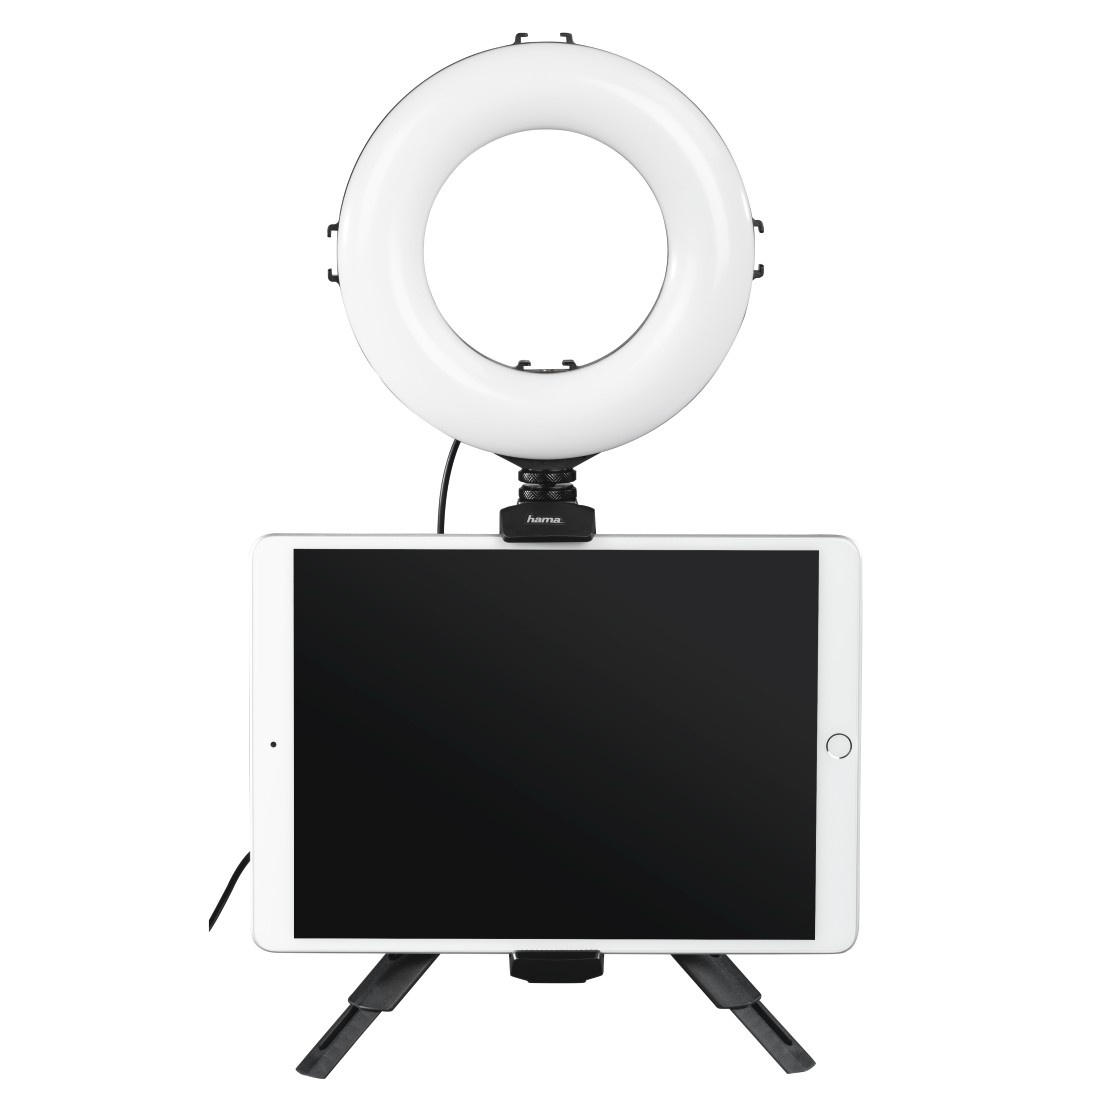 "awx2 High-Res Appliance 2 - Hama, ""SpotLight Work Area 67"" LED Ring Light, Set for Smartphone and Tablet"